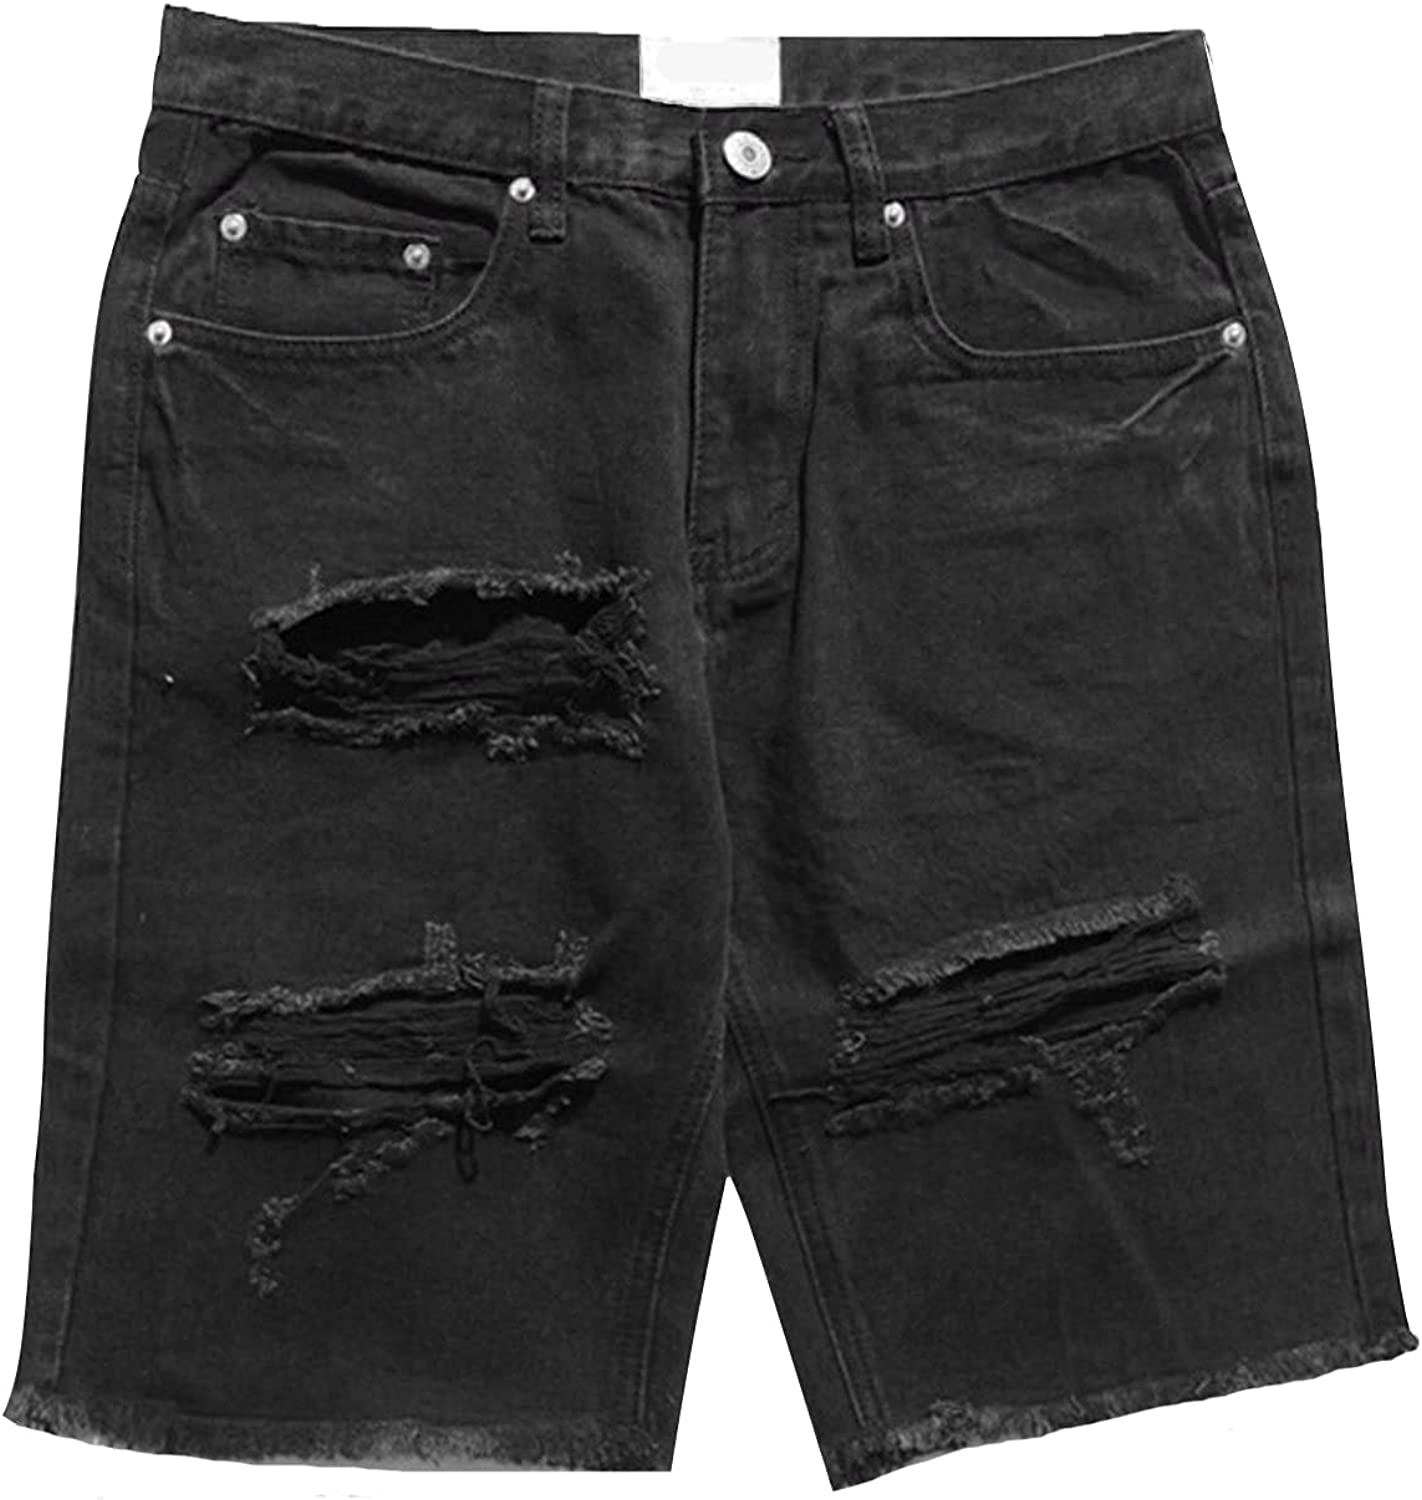 Men's Street Style Jean Shorts Distressed Classic Fit Frayed Short Jean Pants Fashion Ripped Knee Lenght Half Jeans